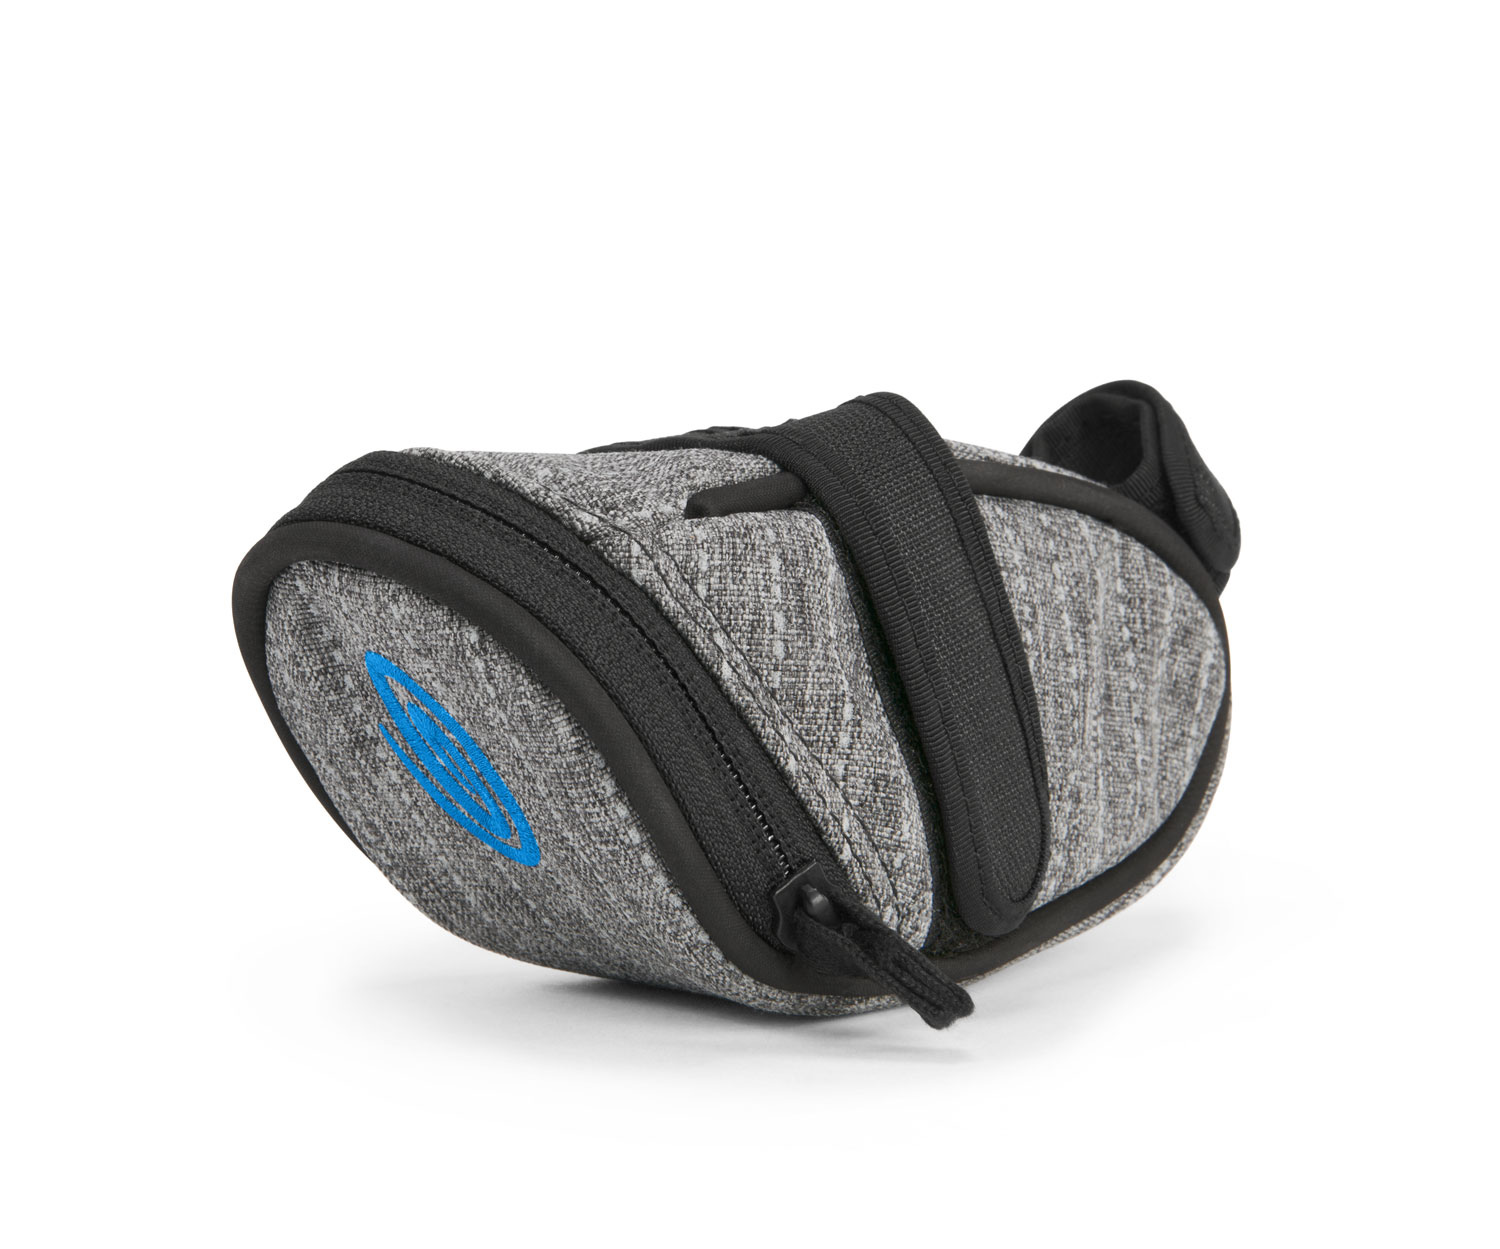 Timbuk2 Bike Seat Pack - Black/Pinstripe Pacific